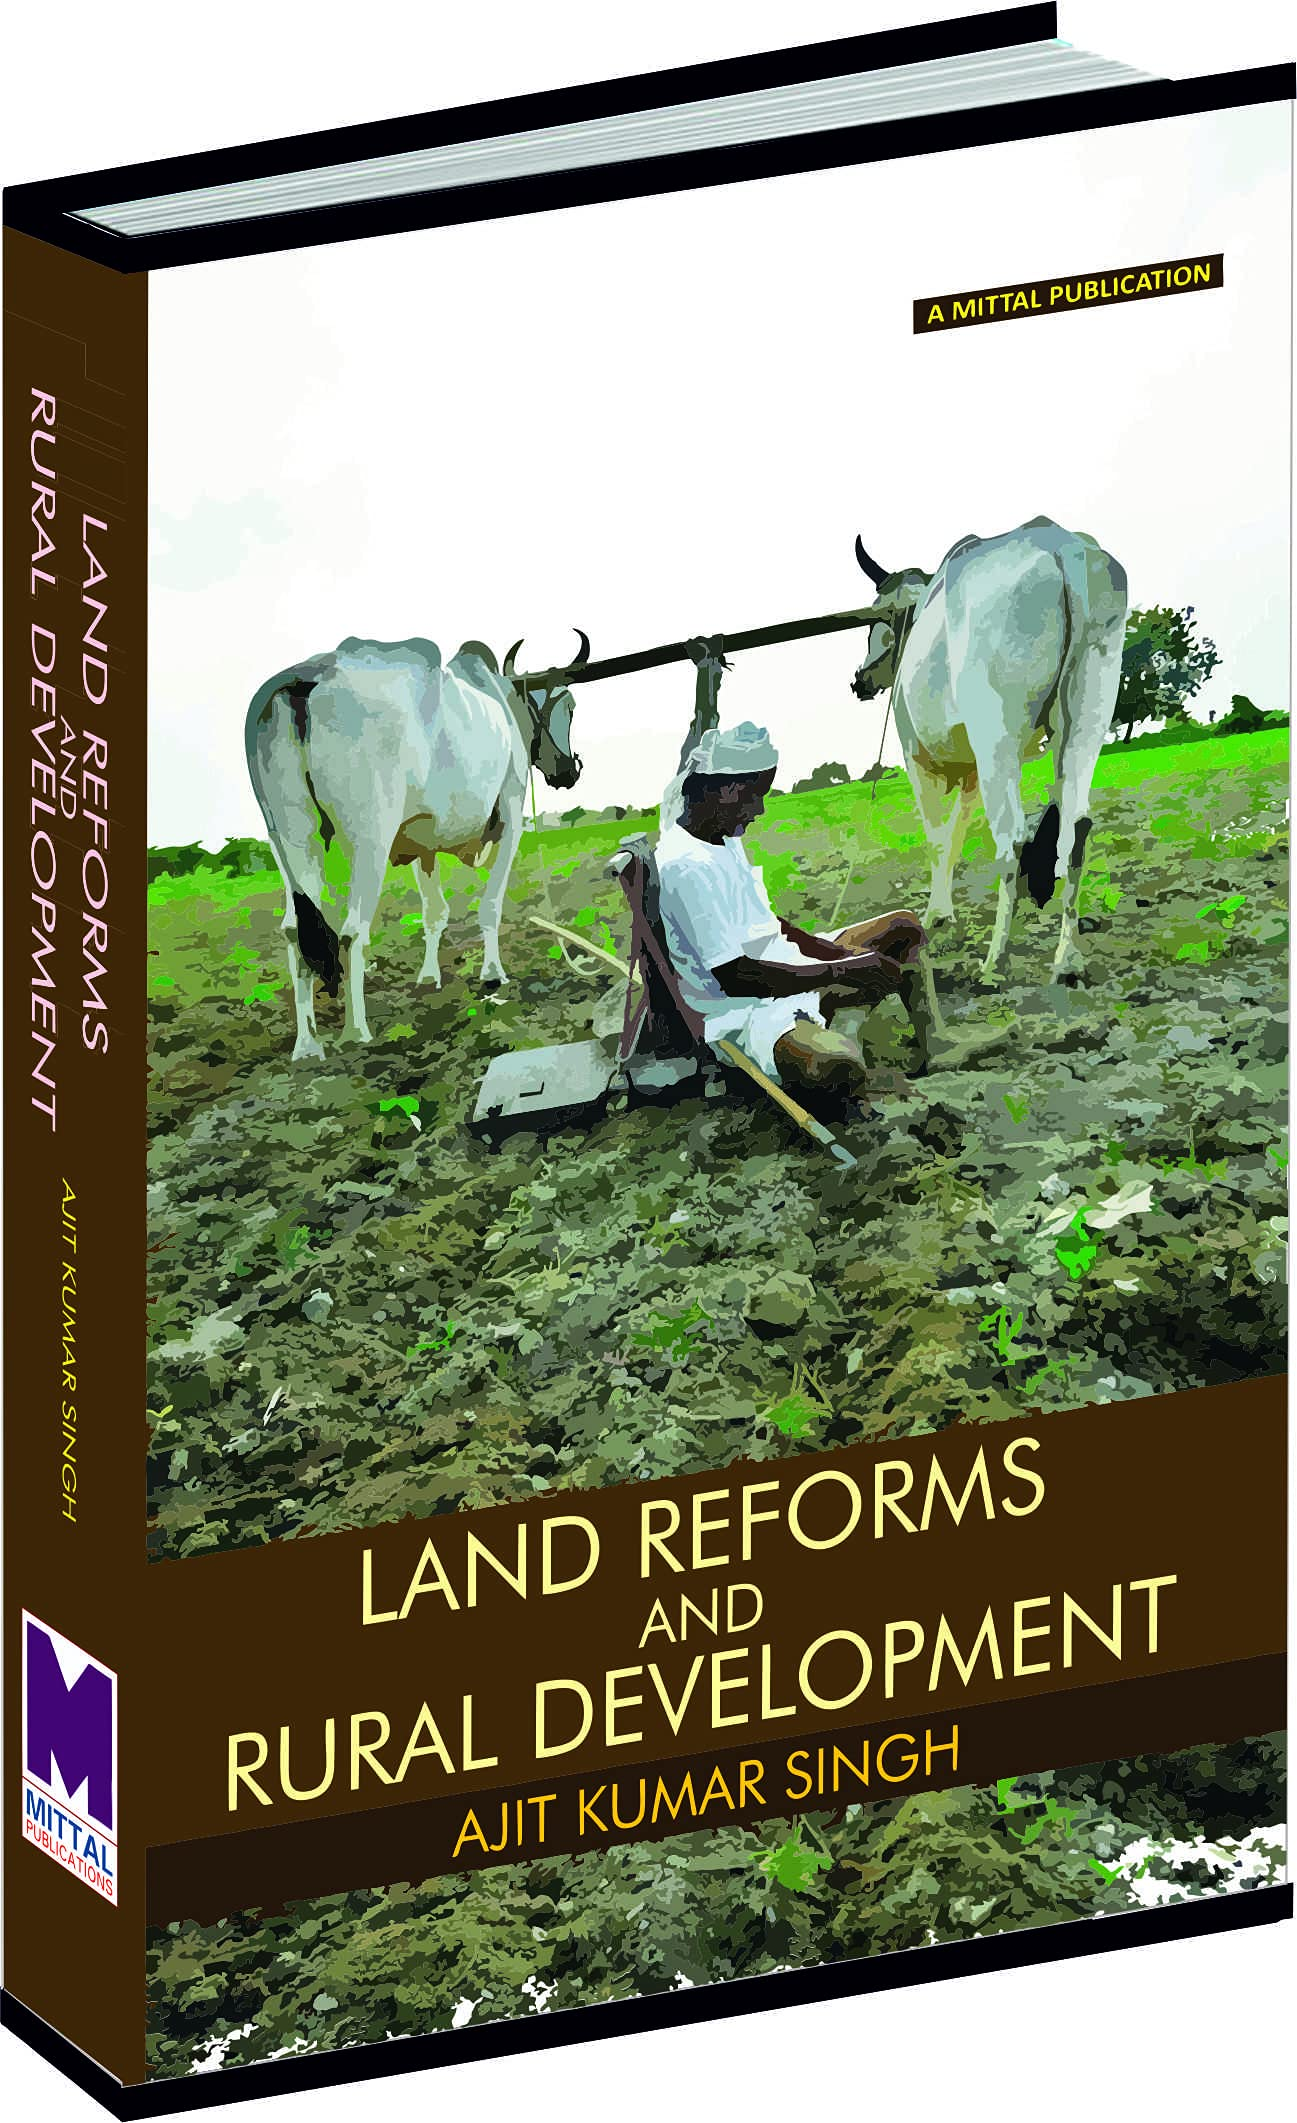 Land Reforms and Rural Development